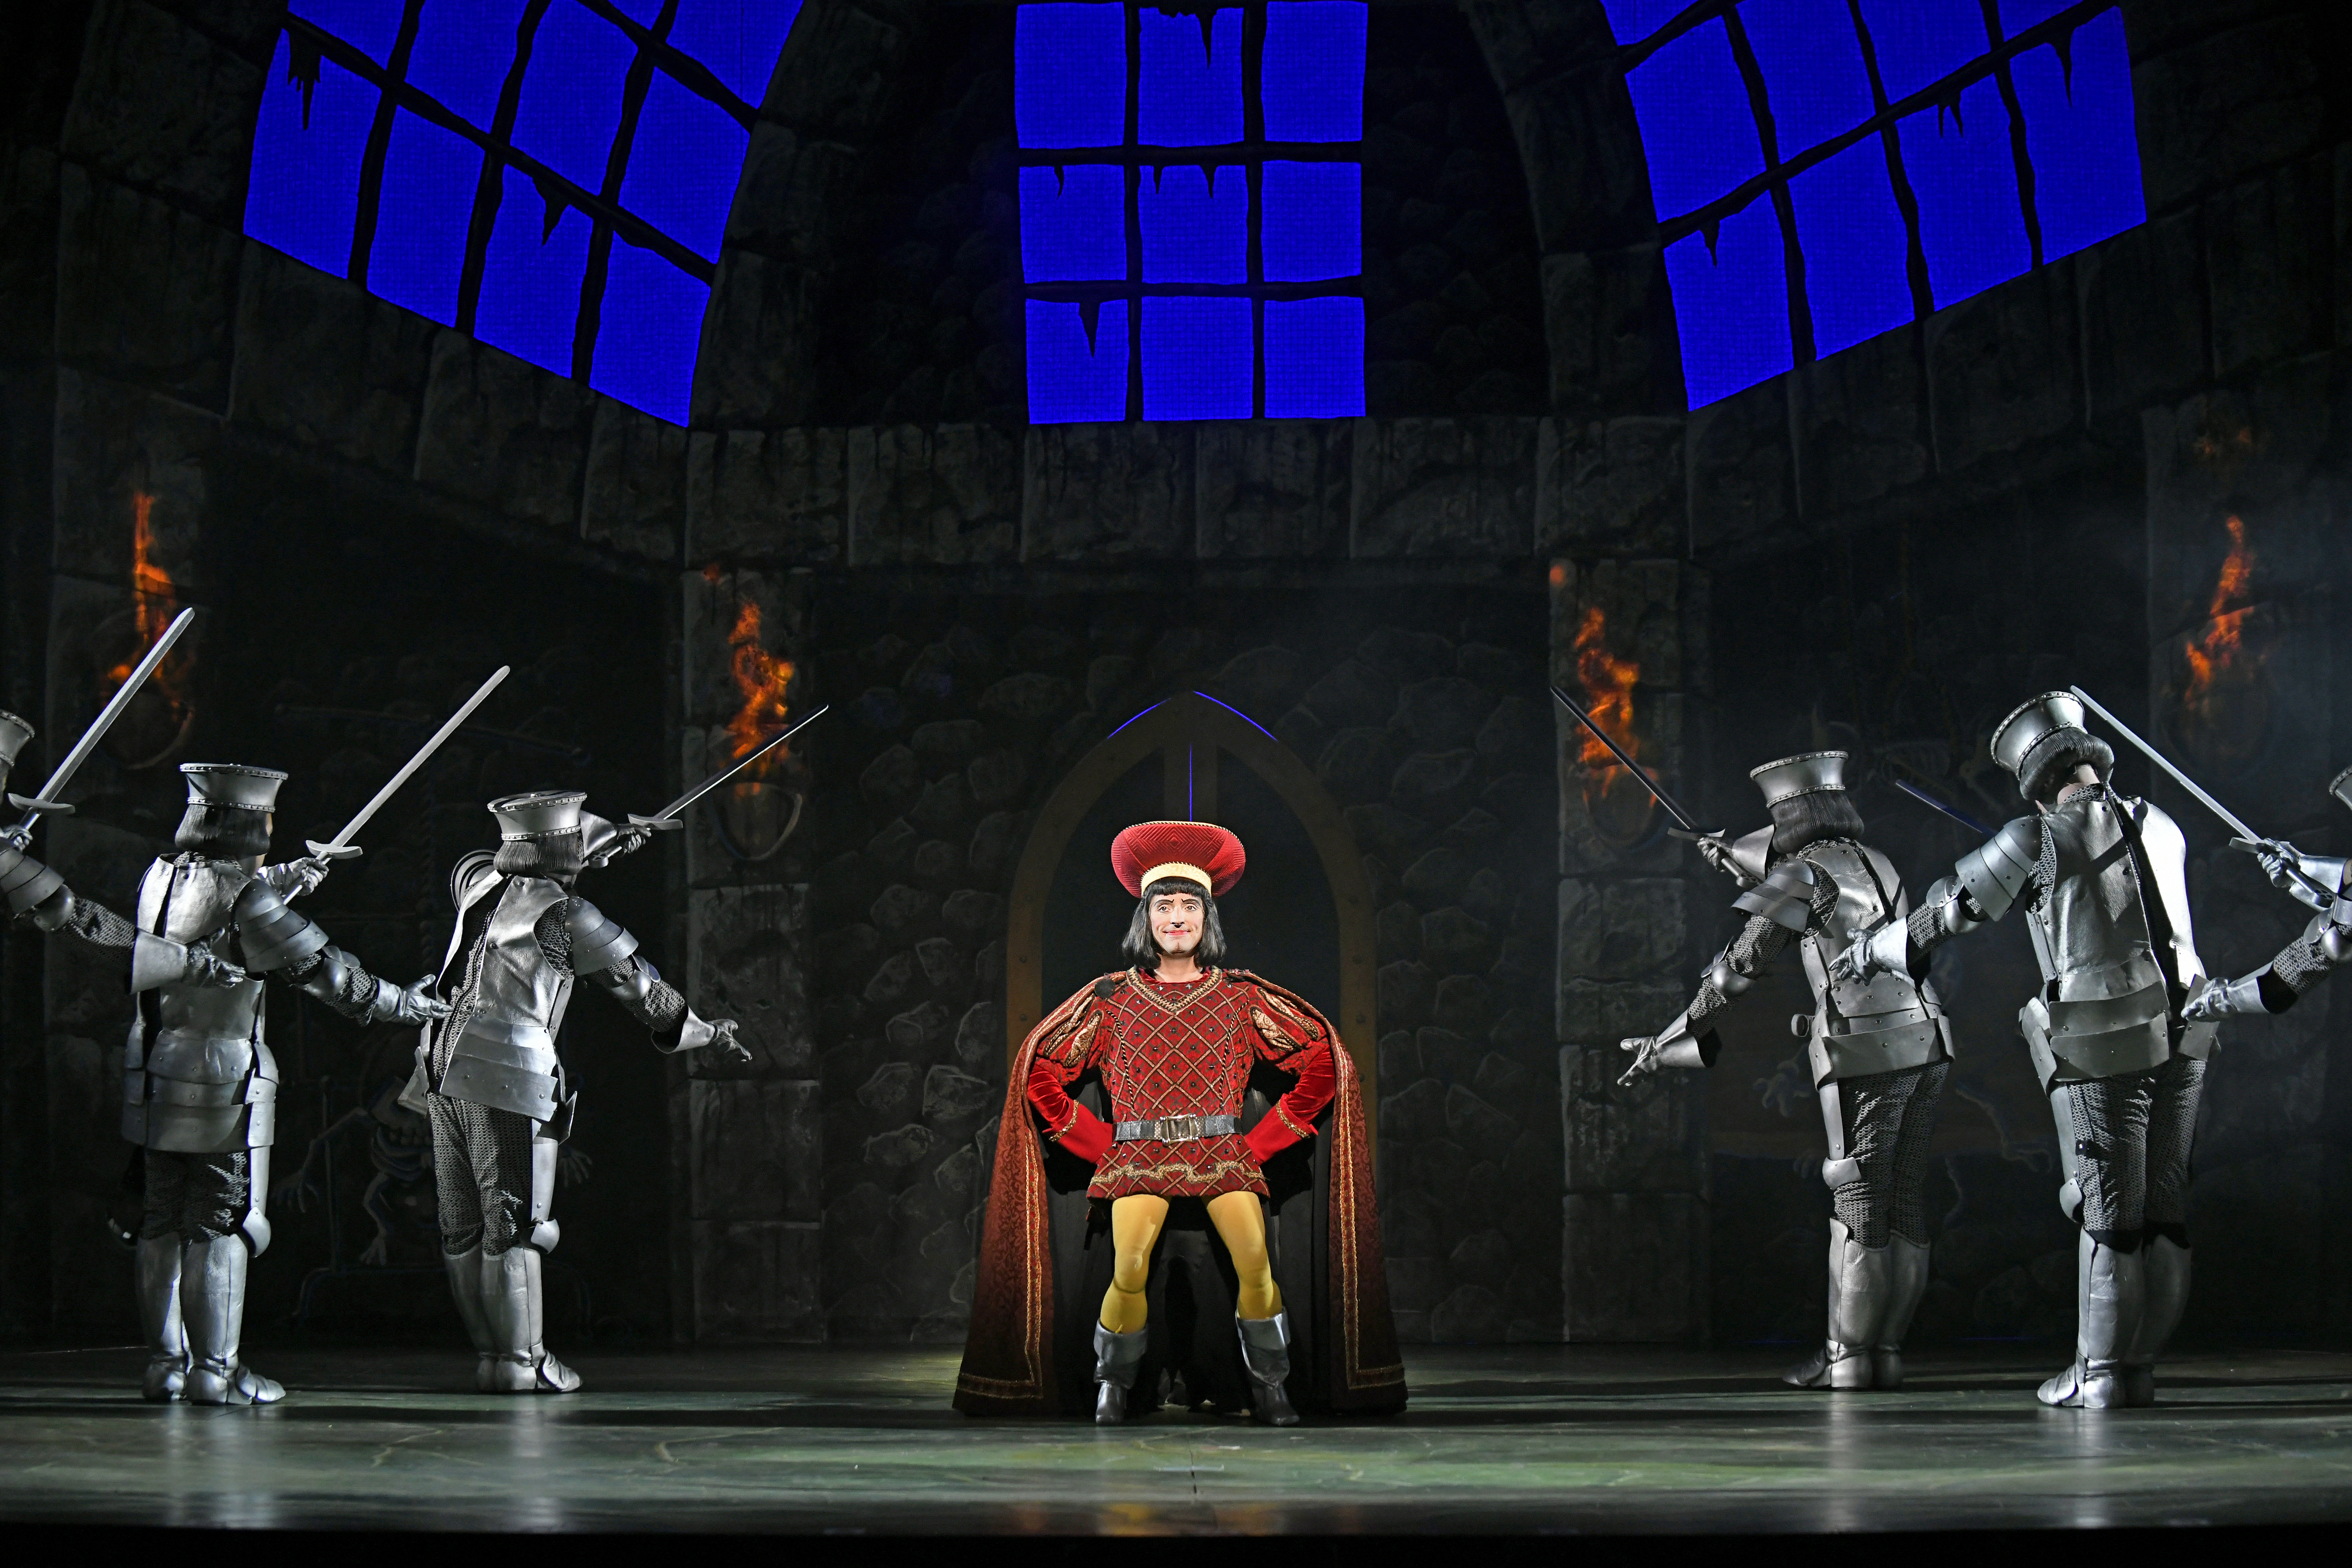 One Roar Time 3 D Theatricals Ogre Hauled Shrek The Musical Is A Happily Ever Entertaining Reprise To Please Buck Ing Trends